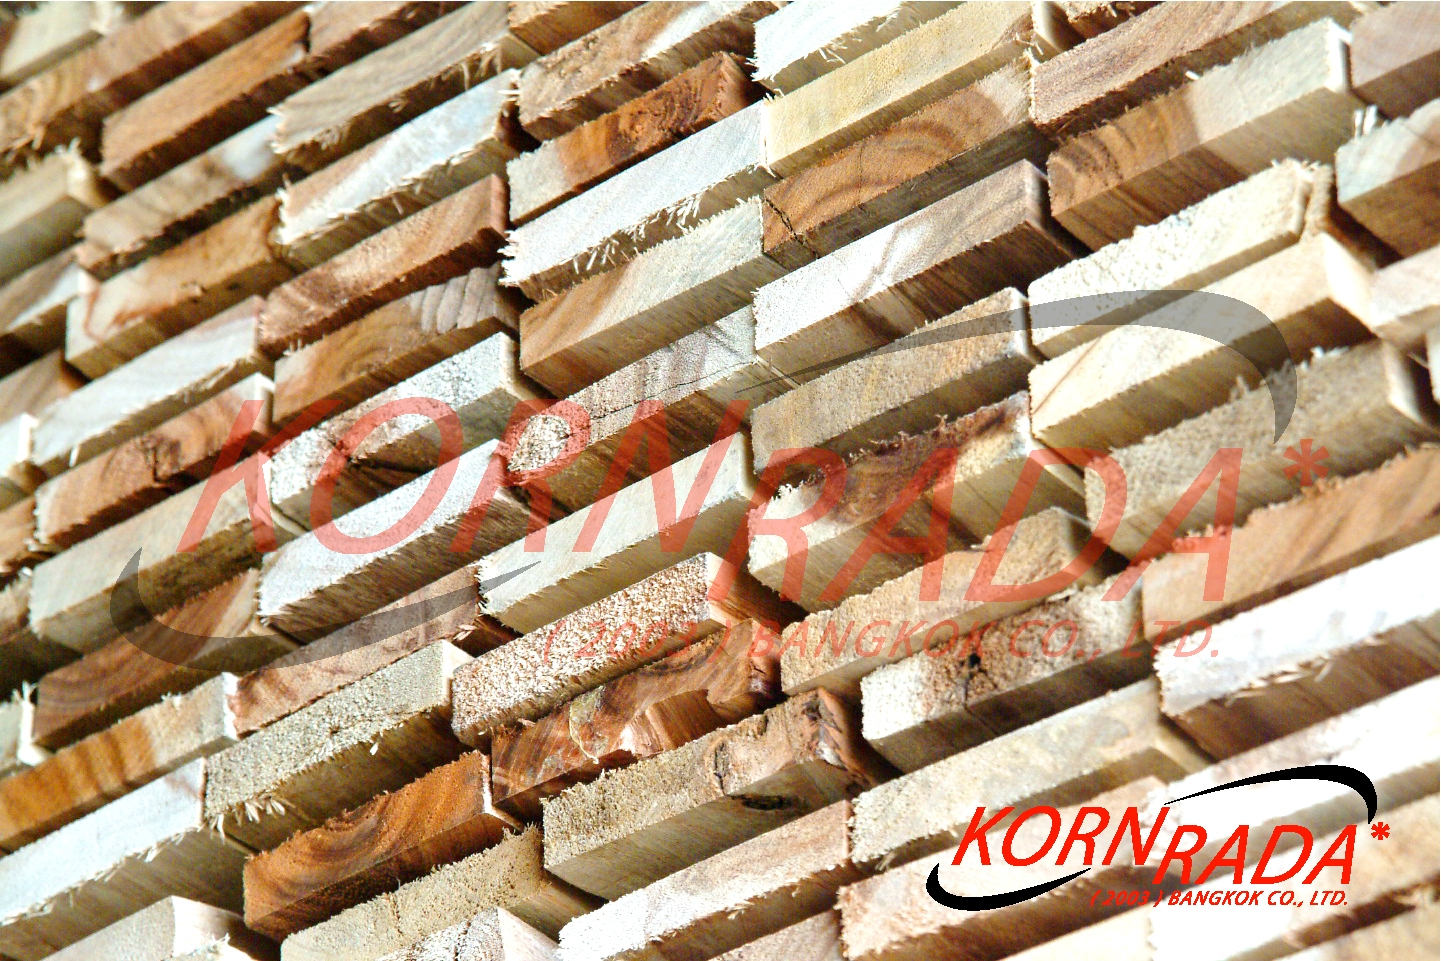 kornrada_products_2192